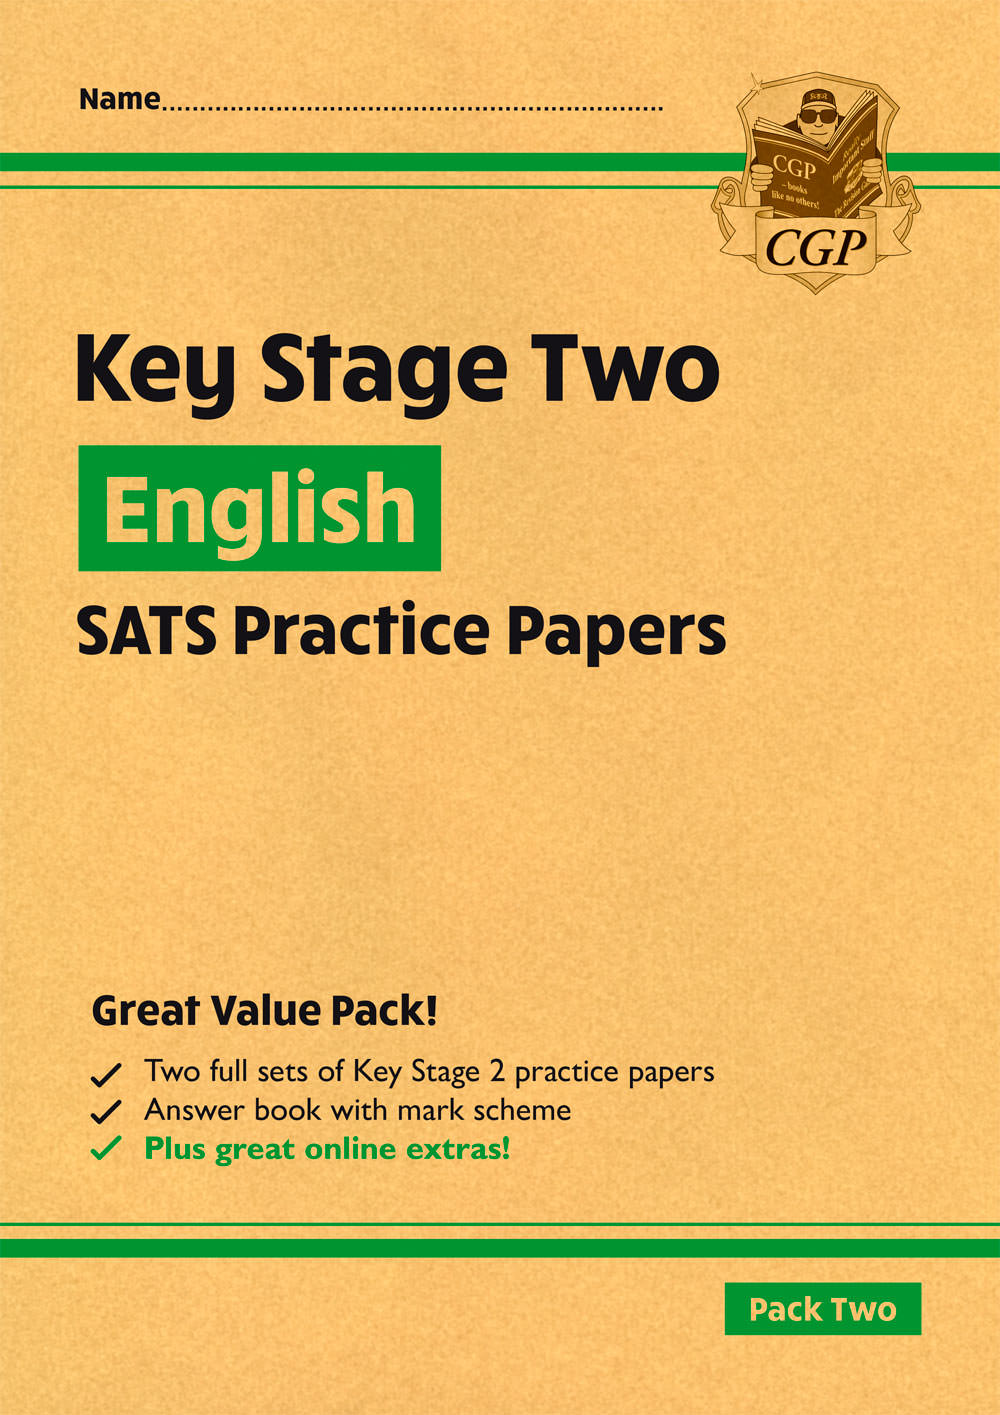 EHGP27 - New KS2 English SATS Practice Papers: Pack 2 (with free Online Extras)